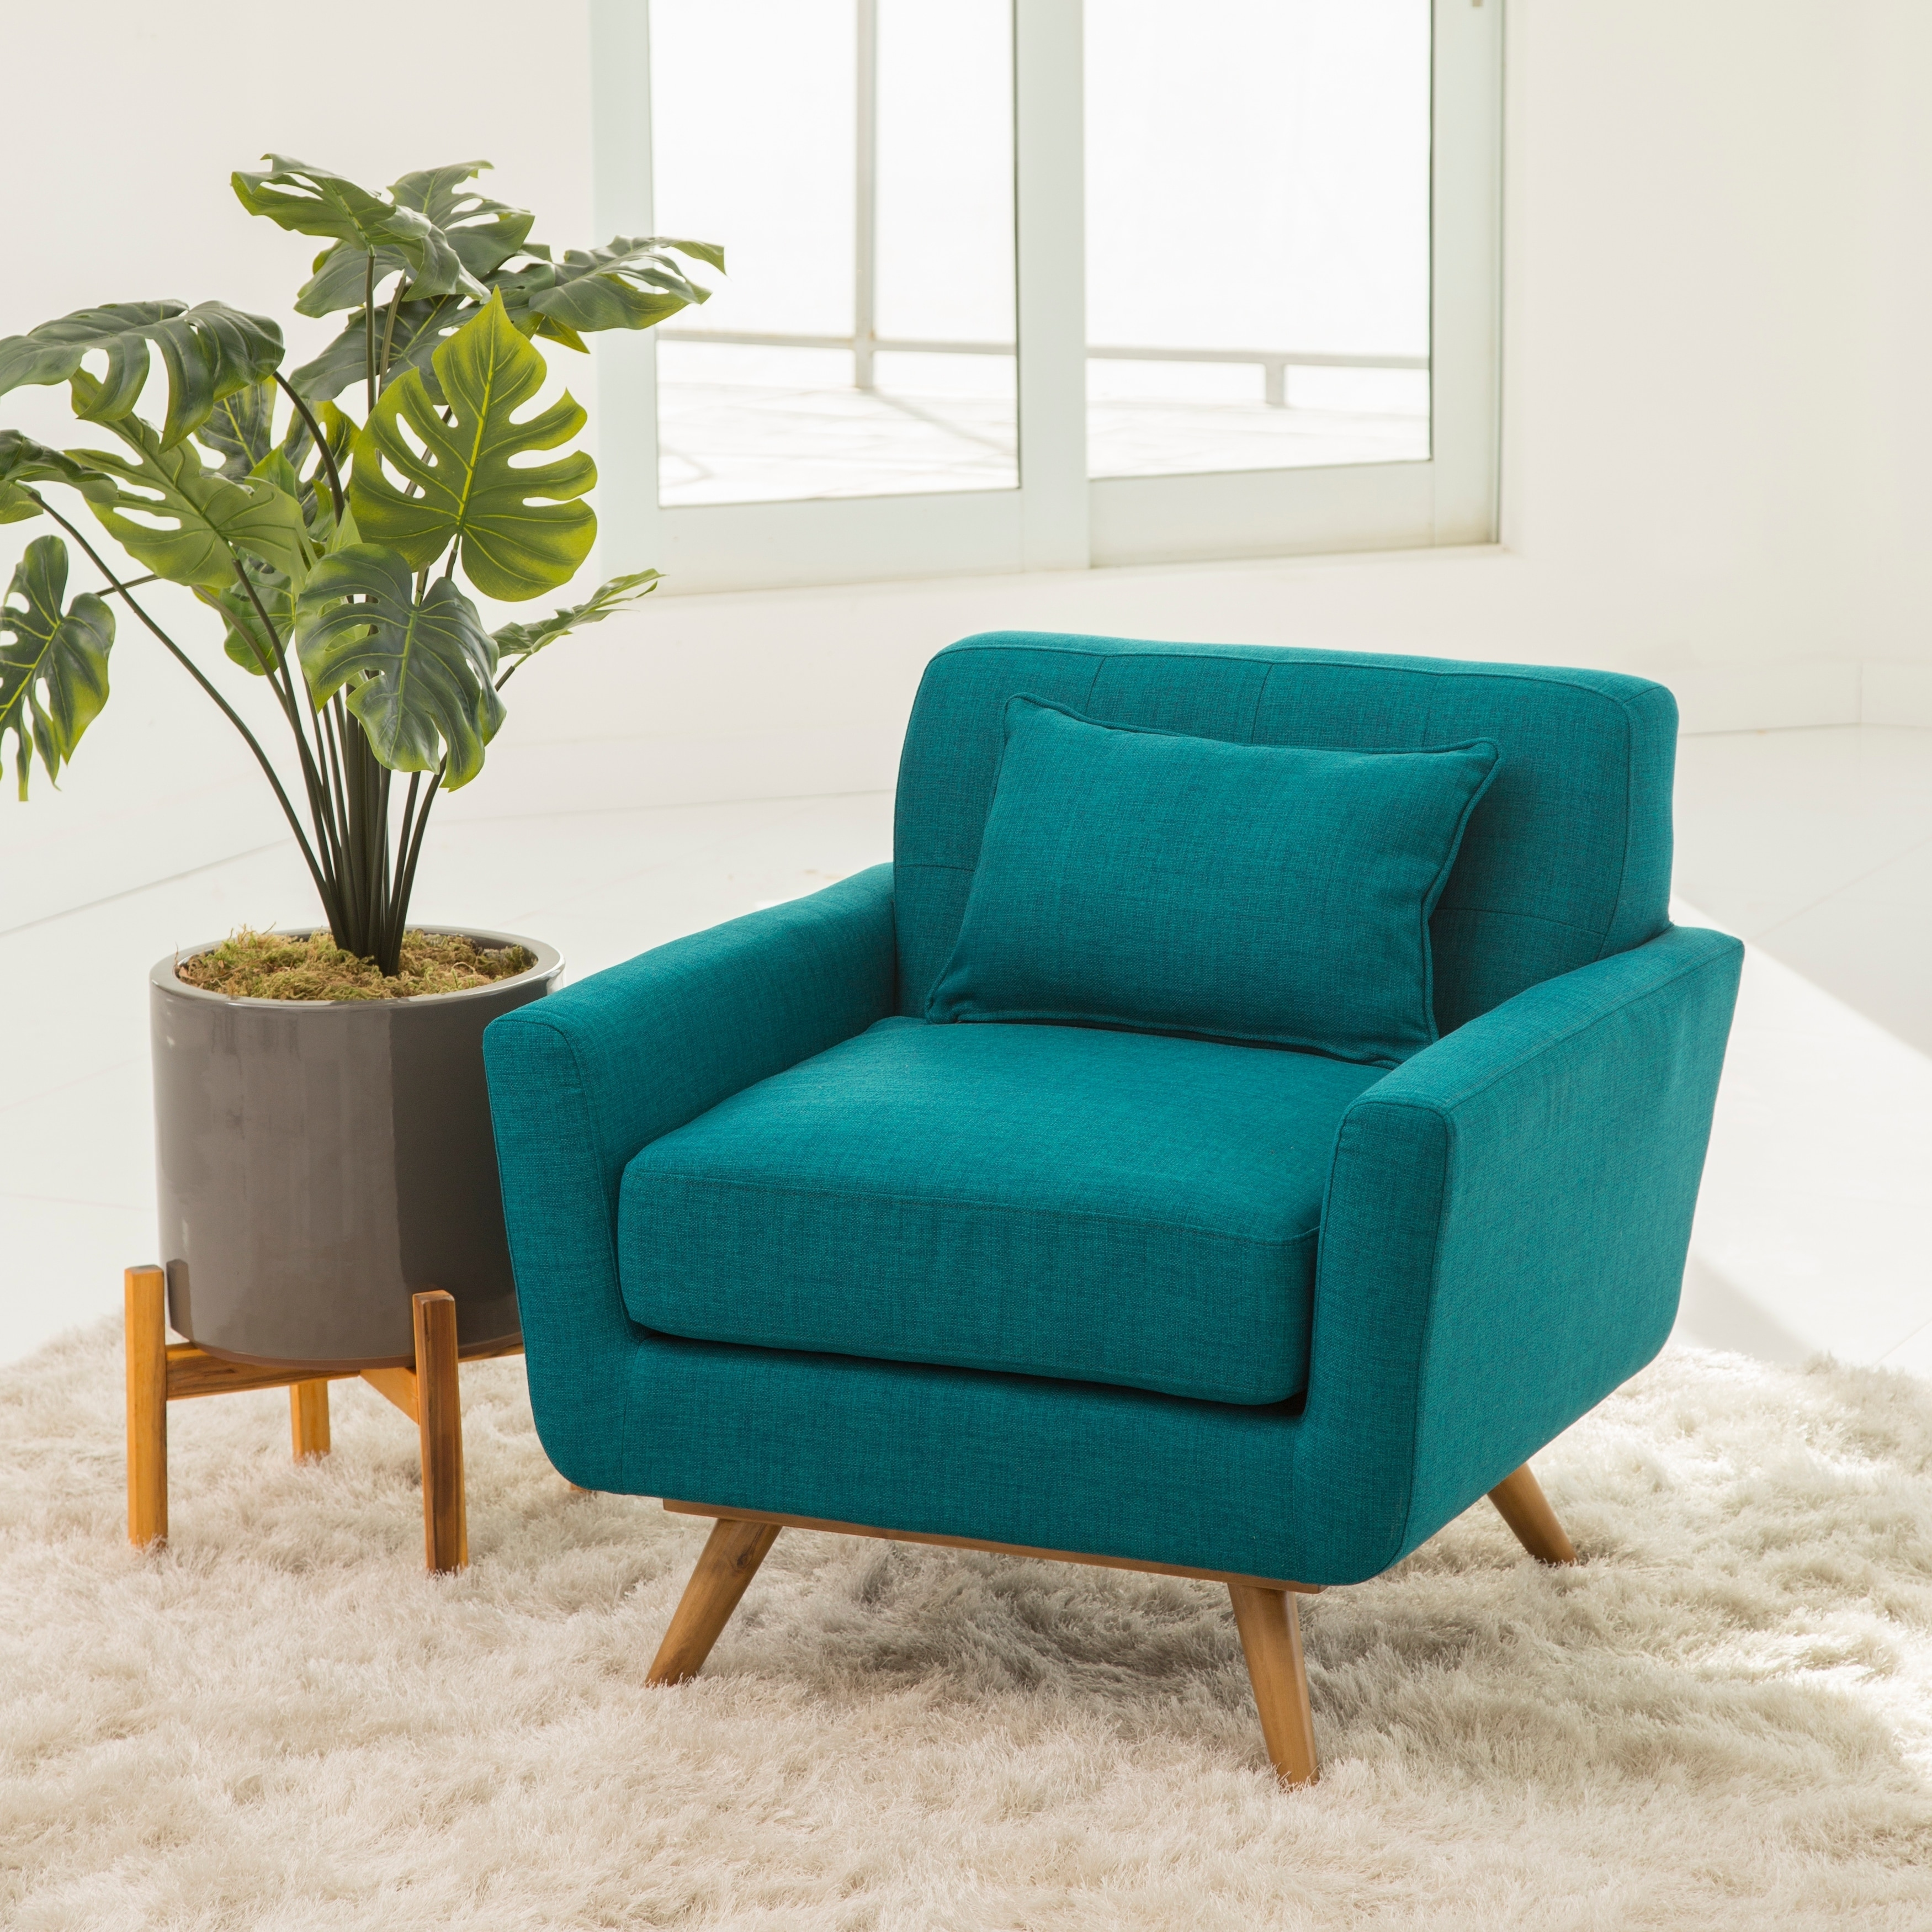 Shop Abbyson Bradley Teal Mid Century Fabric Armchair - On Sale ...